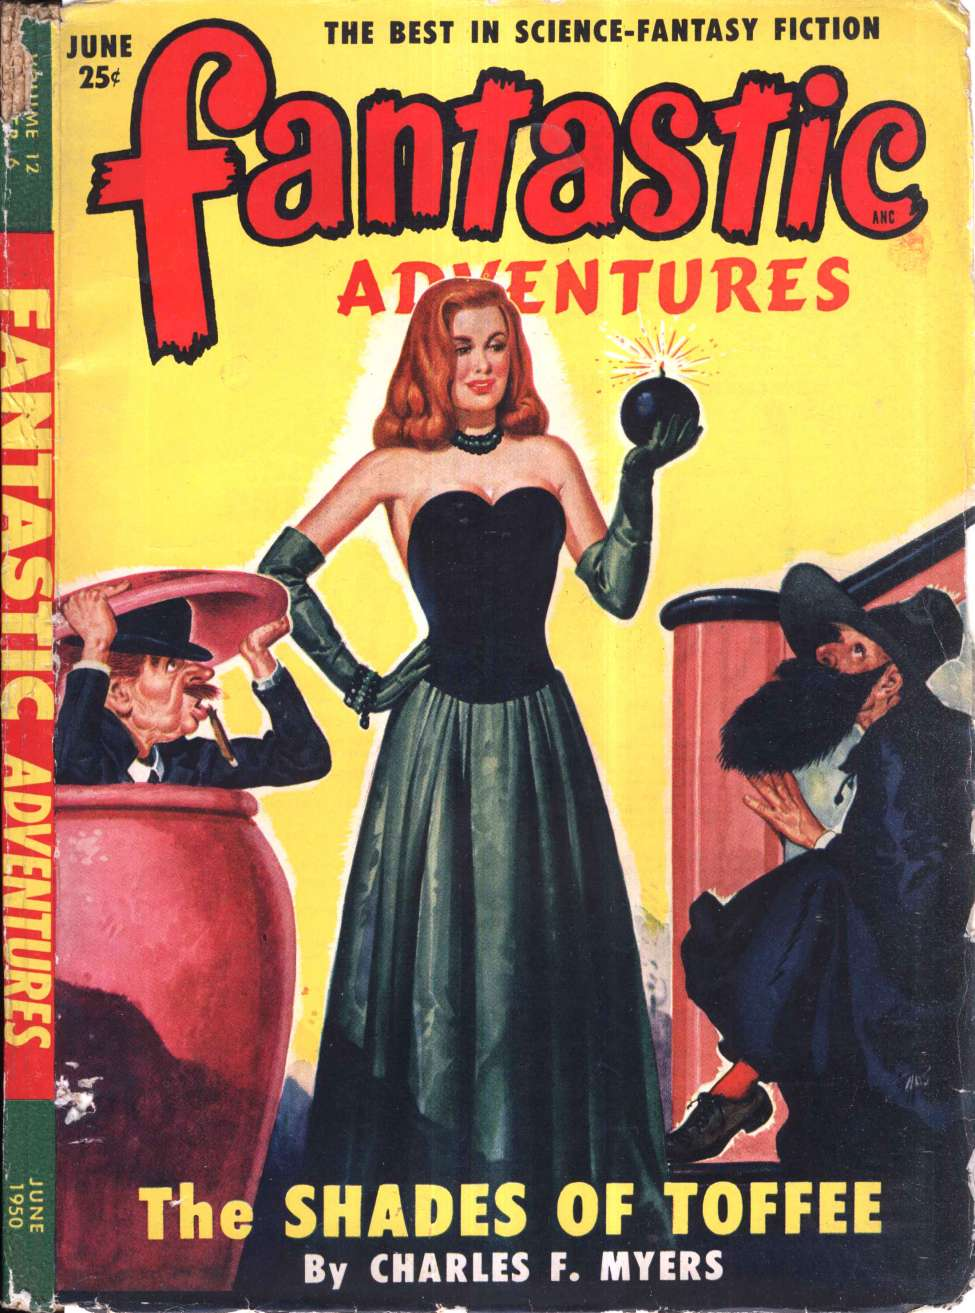 Comic Book Cover For Fantastic Adventures v12 06 - The Shades of Toffee - Charles F. Myers